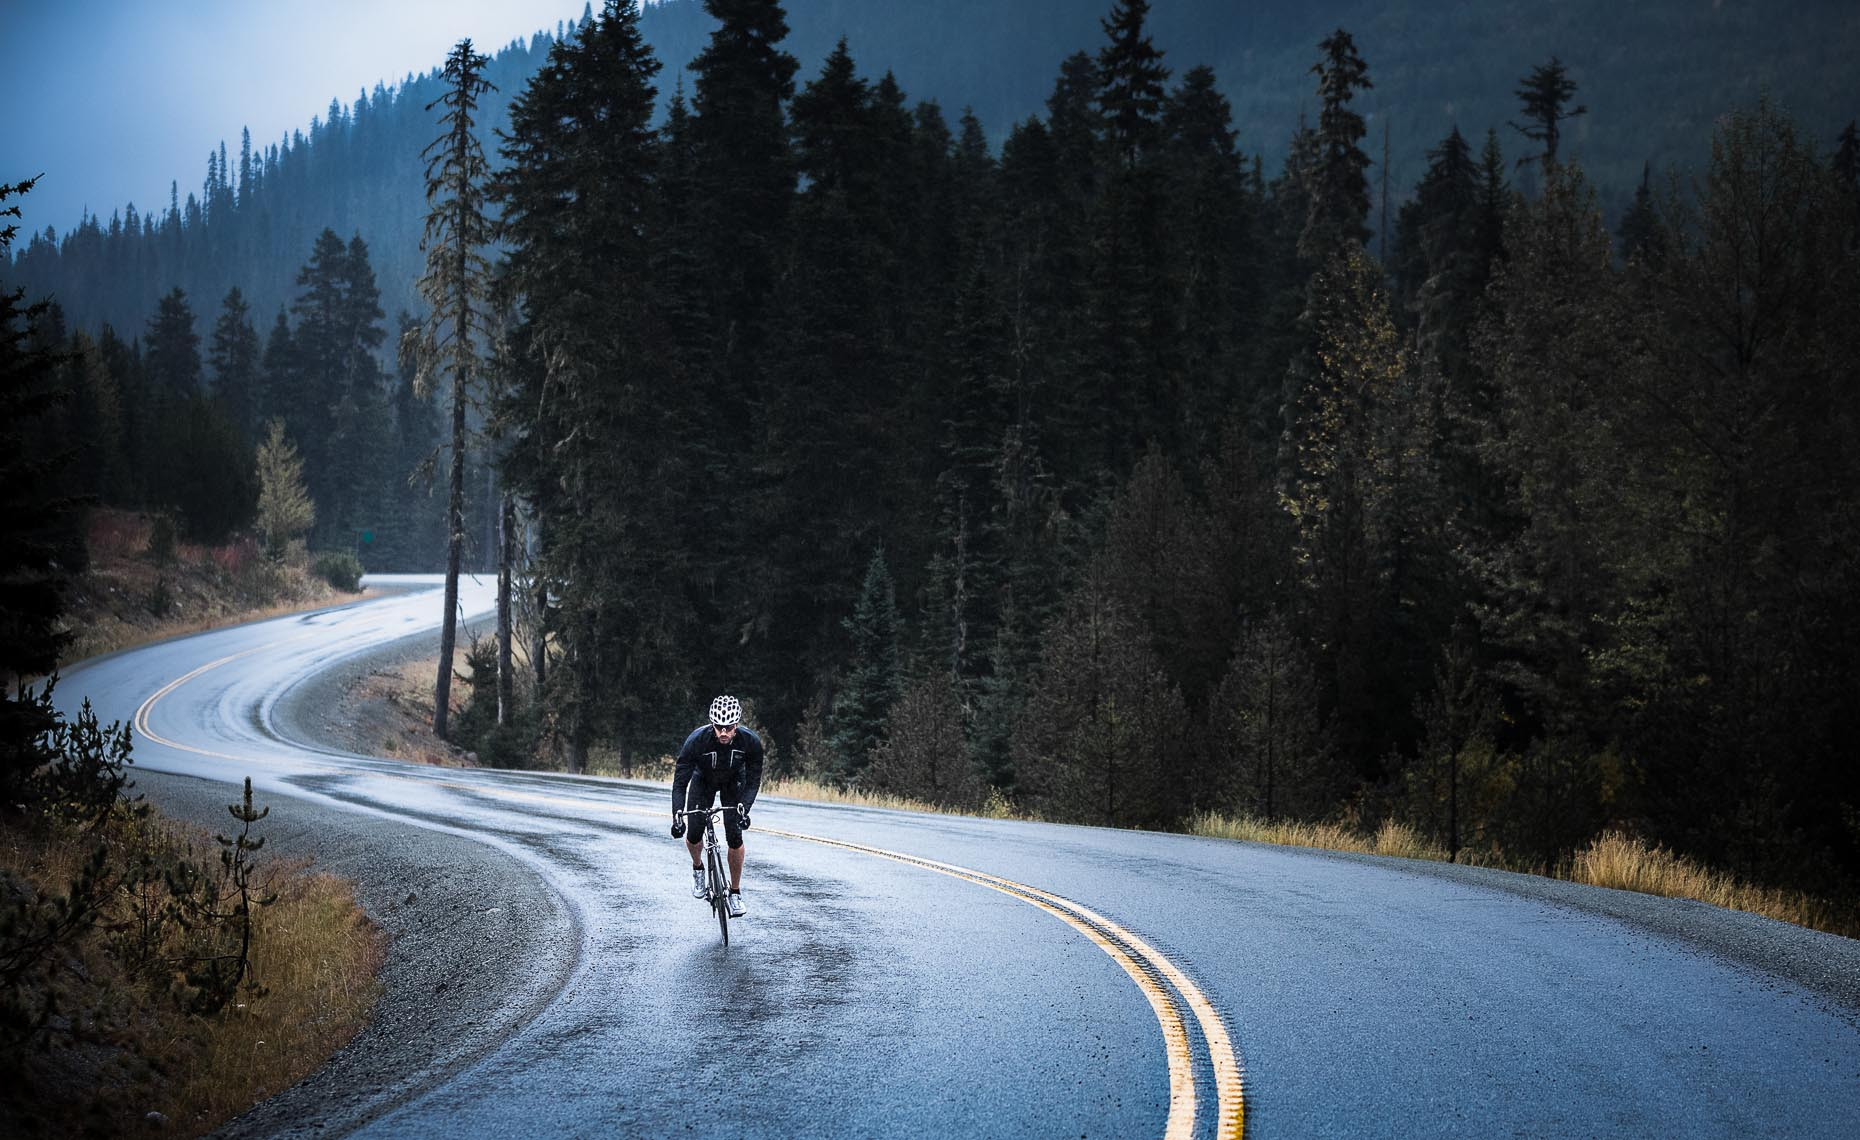 Road cycling lifestyle photographer from Whistler